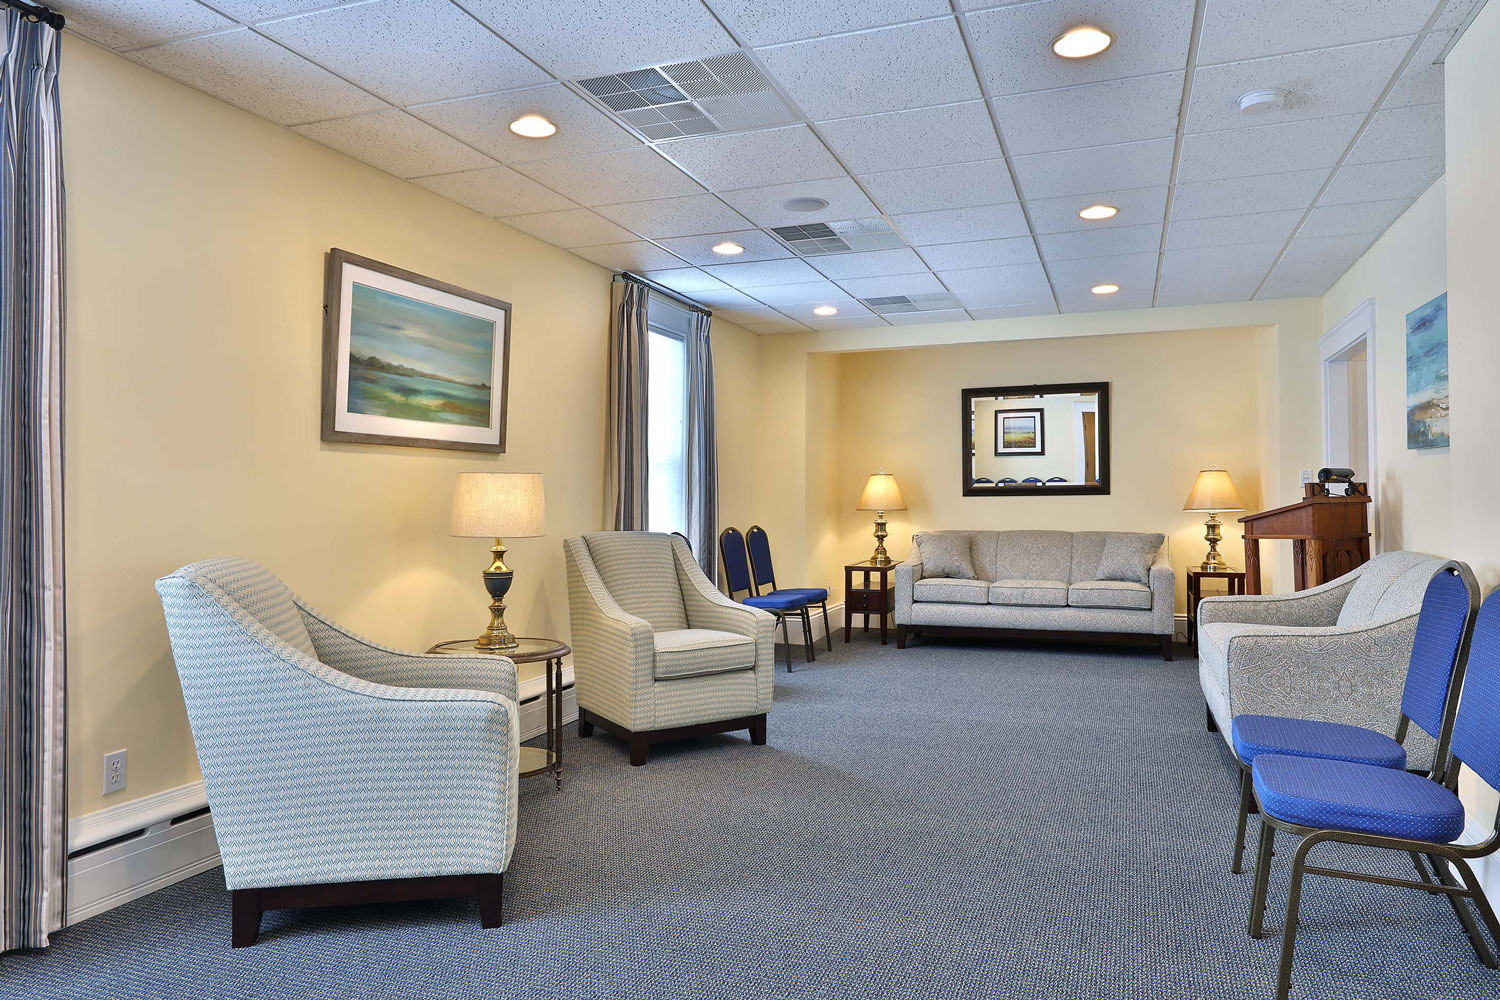 Upholstered seating groupings in French blue and gold speck commercial carpet.